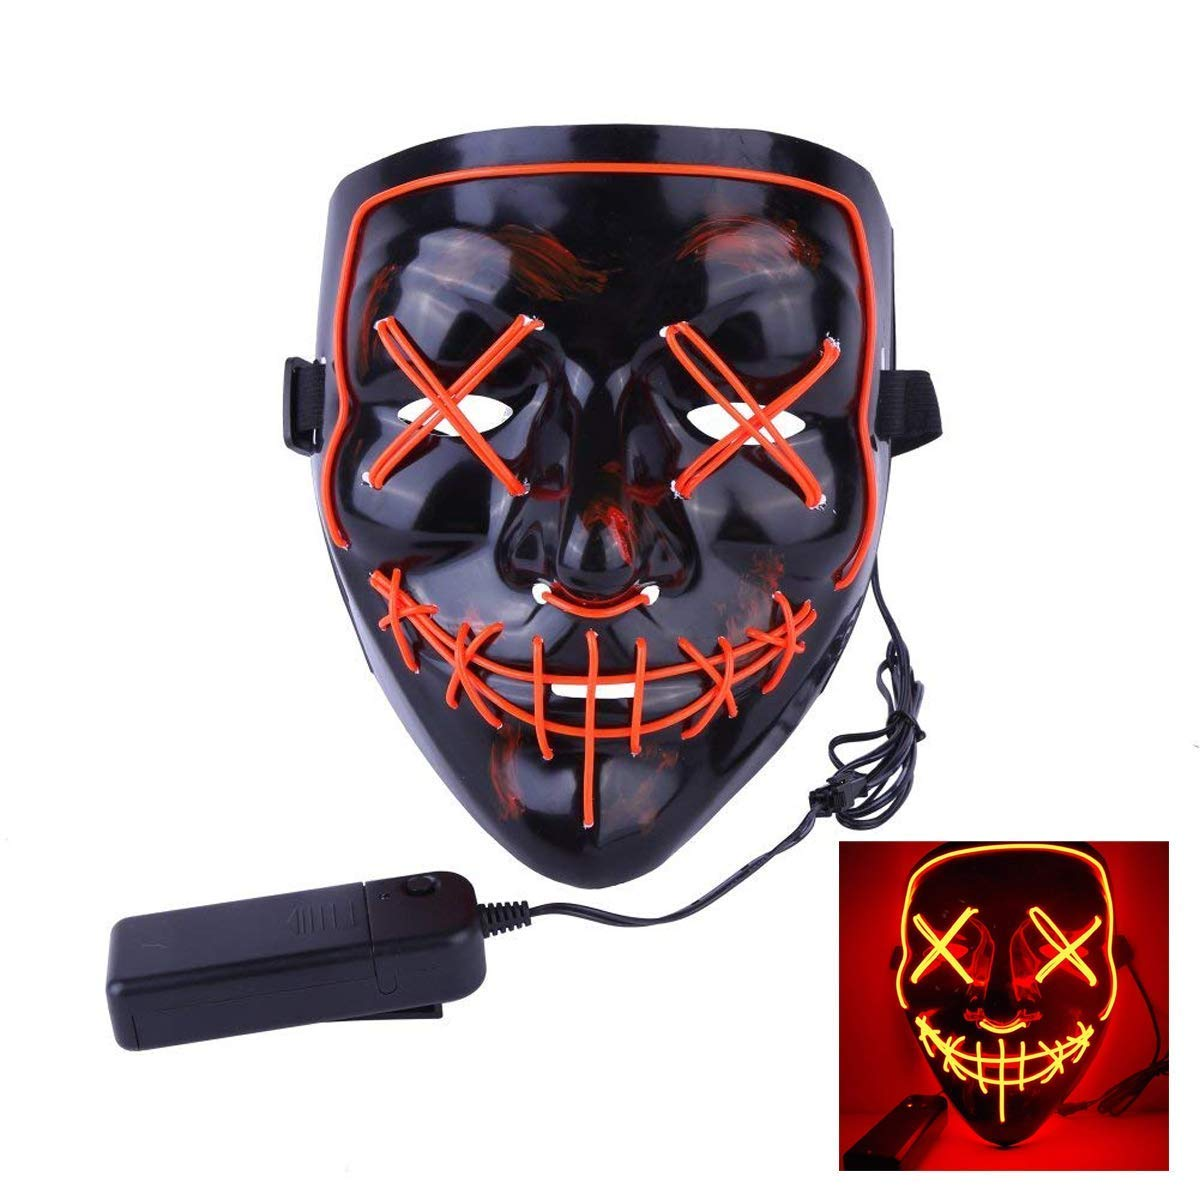 ZIKKER Frightening Halloween Mask Light up Purge Mask for Festival Cosplay Halloween Costume Z-MK-02